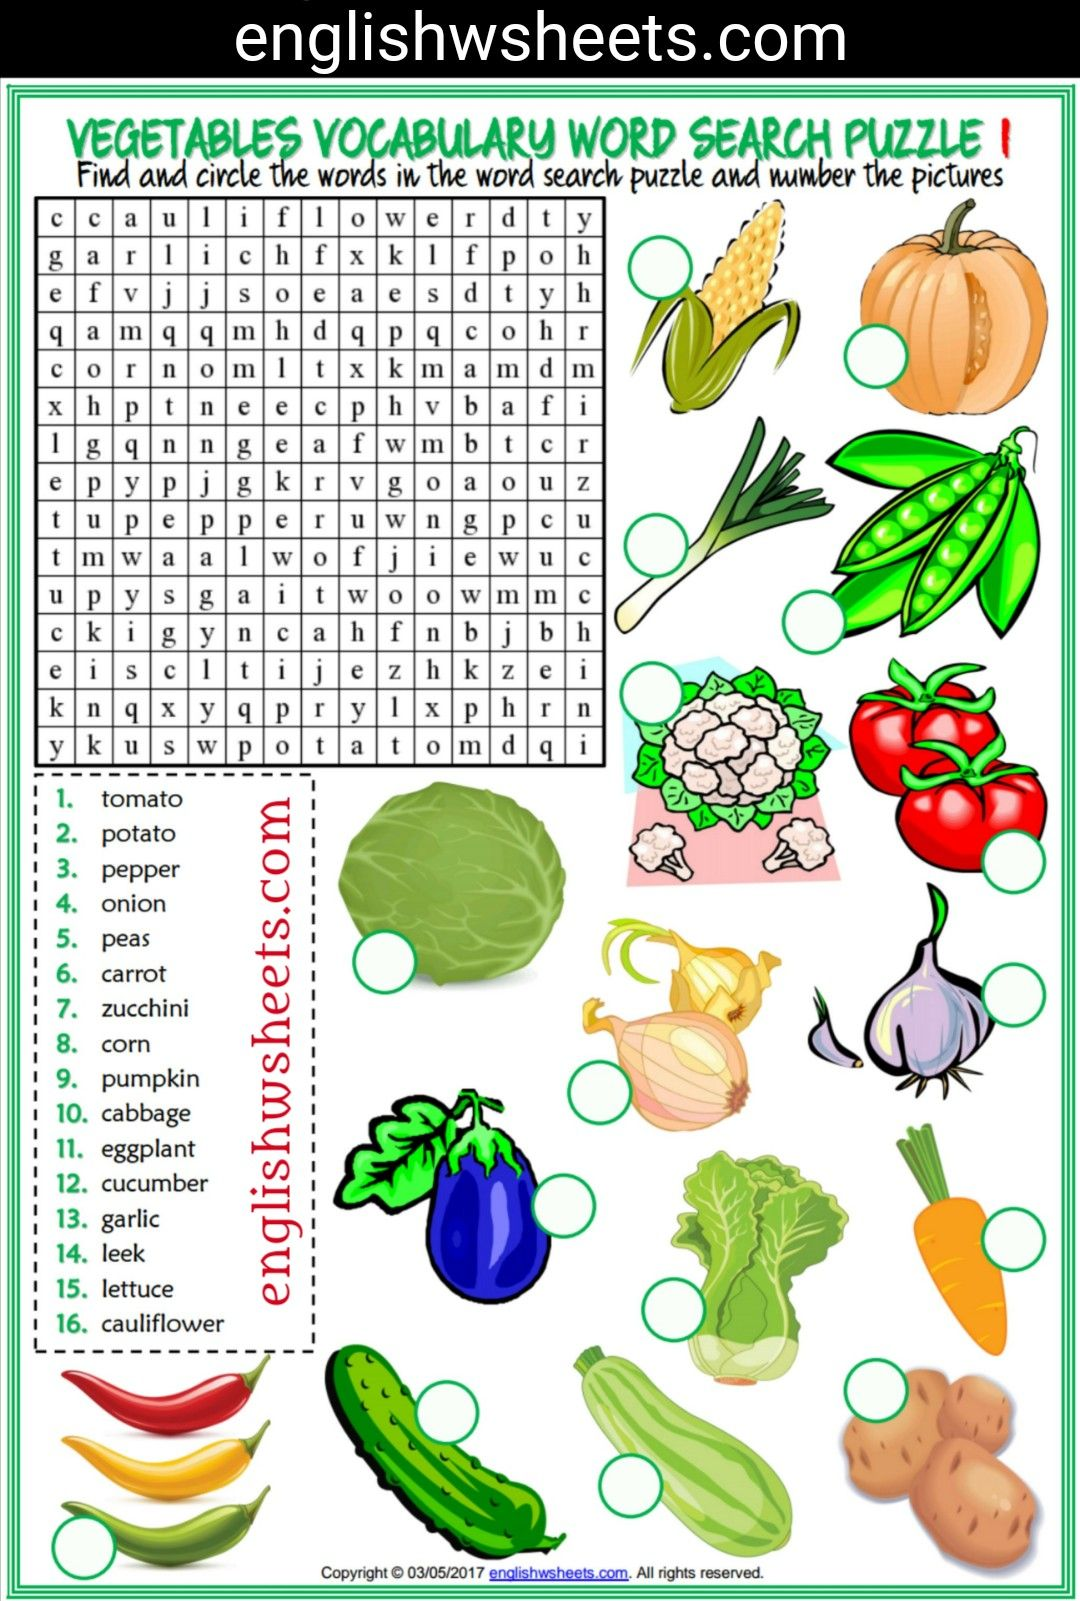 Vegetables Esl Printable Word Search Puzzle Worksheets For Kids 2 Sets Vegetables